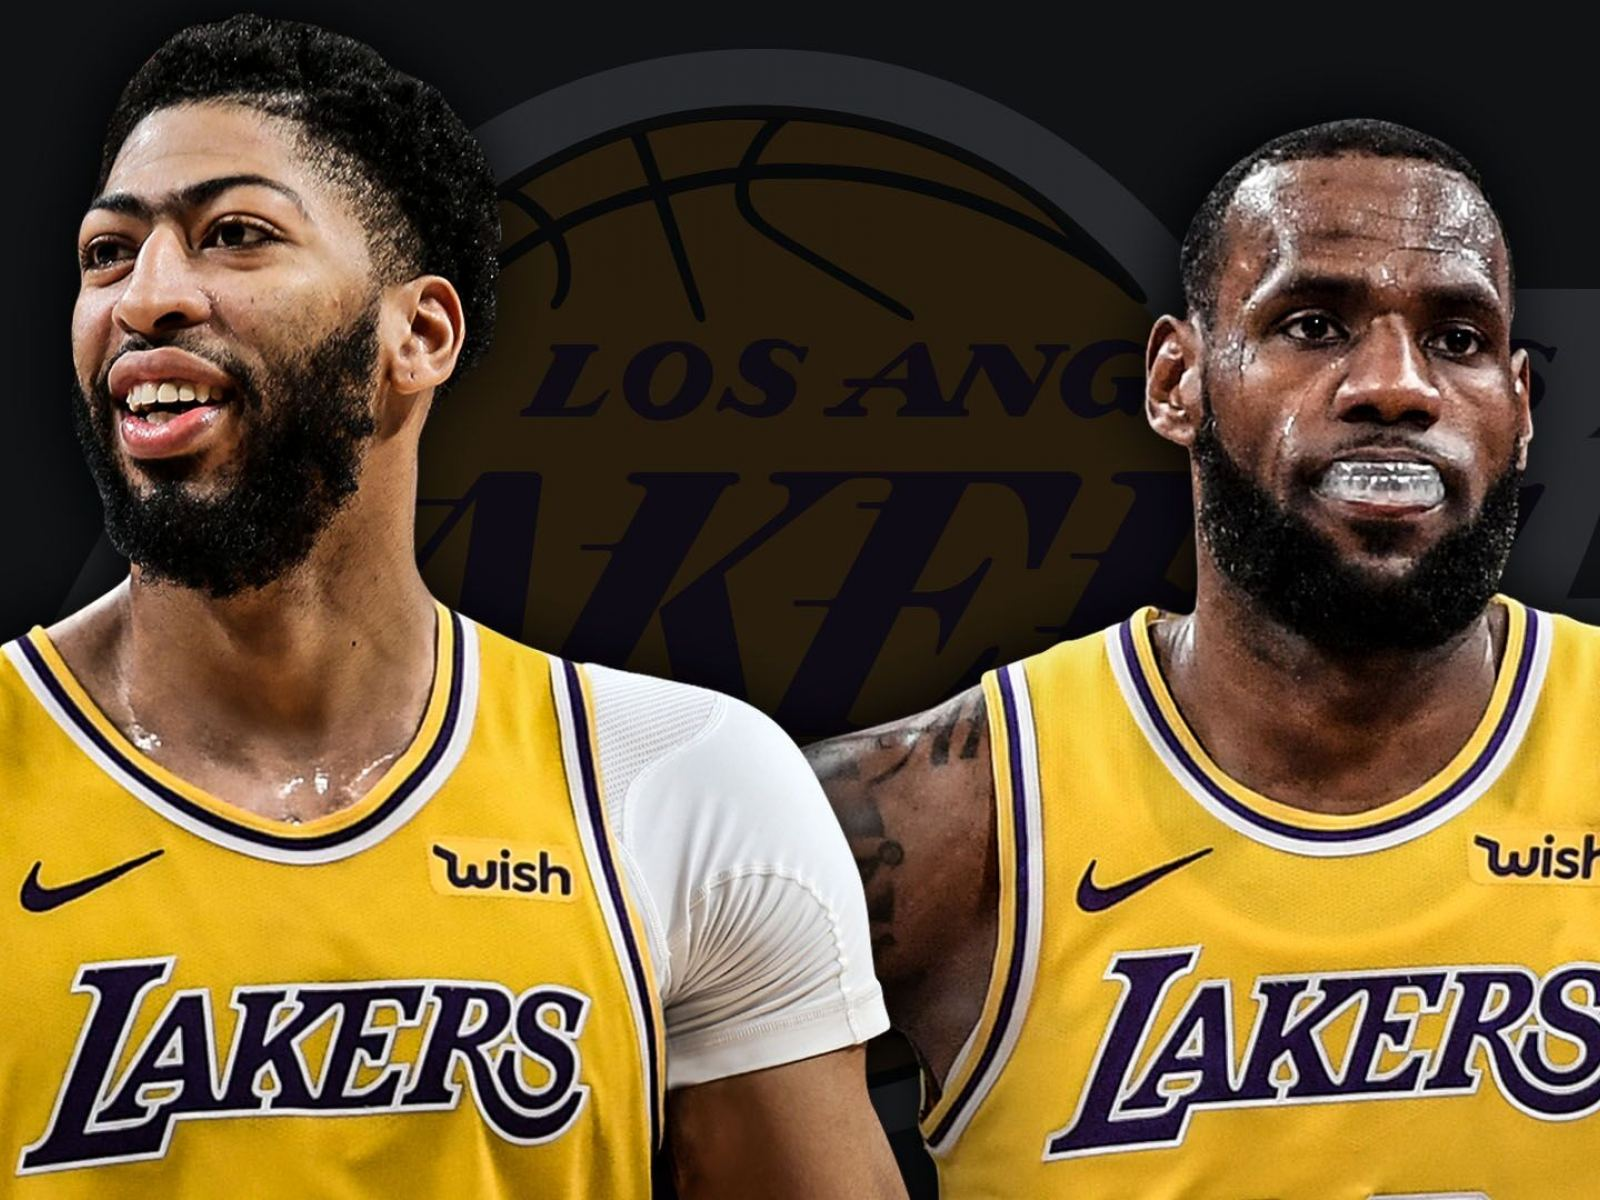 Main image for event titled Los Angeles Lakers vs Milwaukee Bucks